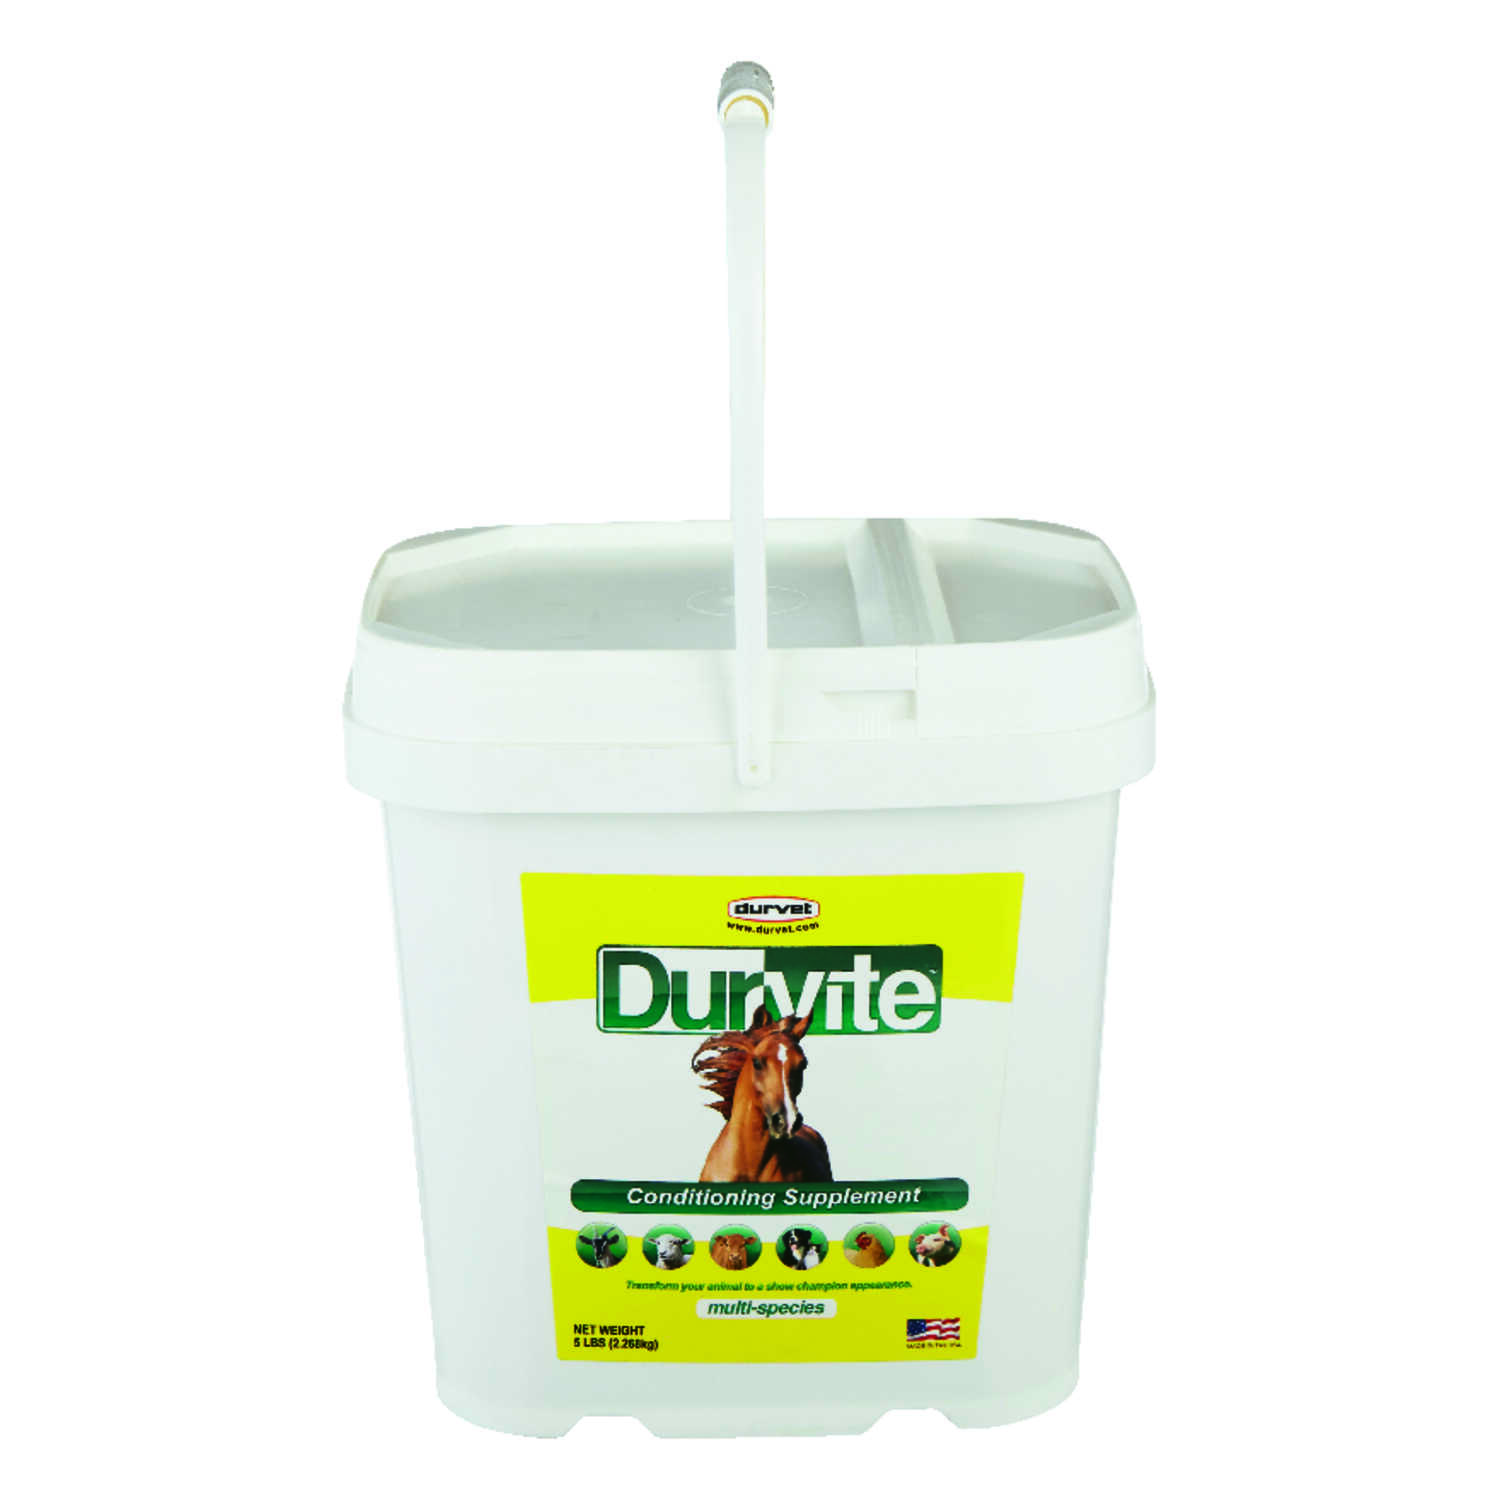 Durvite  Solid  Conditioning Supplement  For All Animals 5 lb.